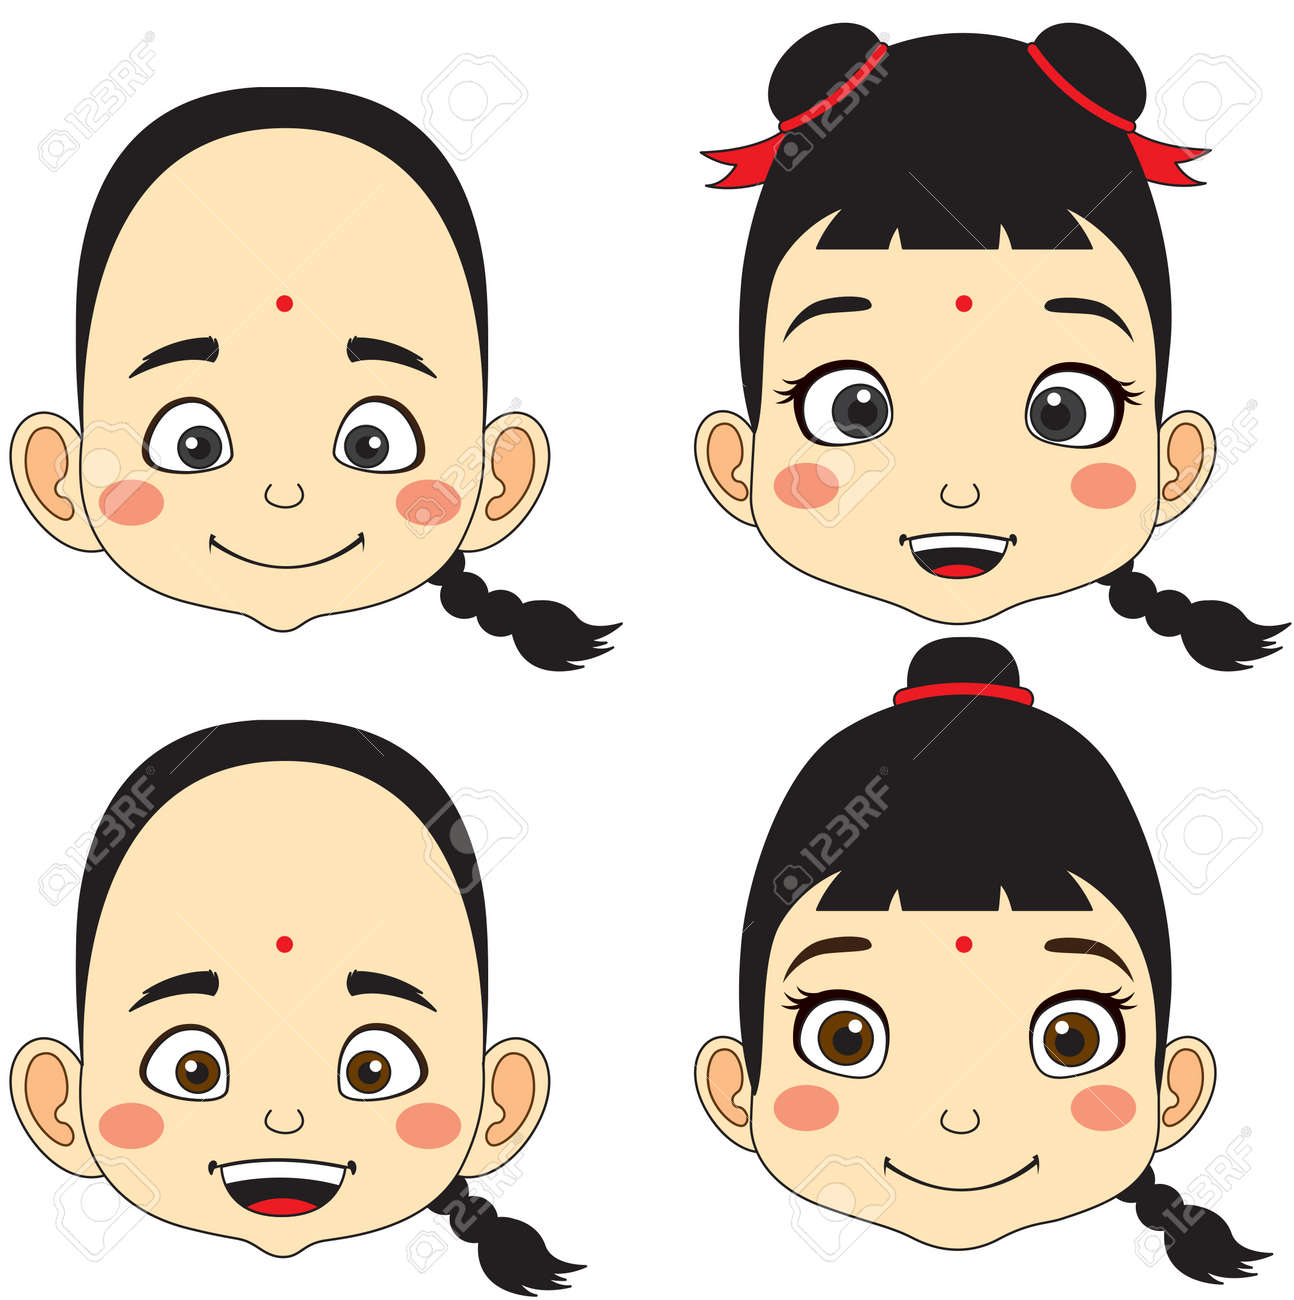 Chinese. Cartoon Face Boy and girl vector illustration - 125940686